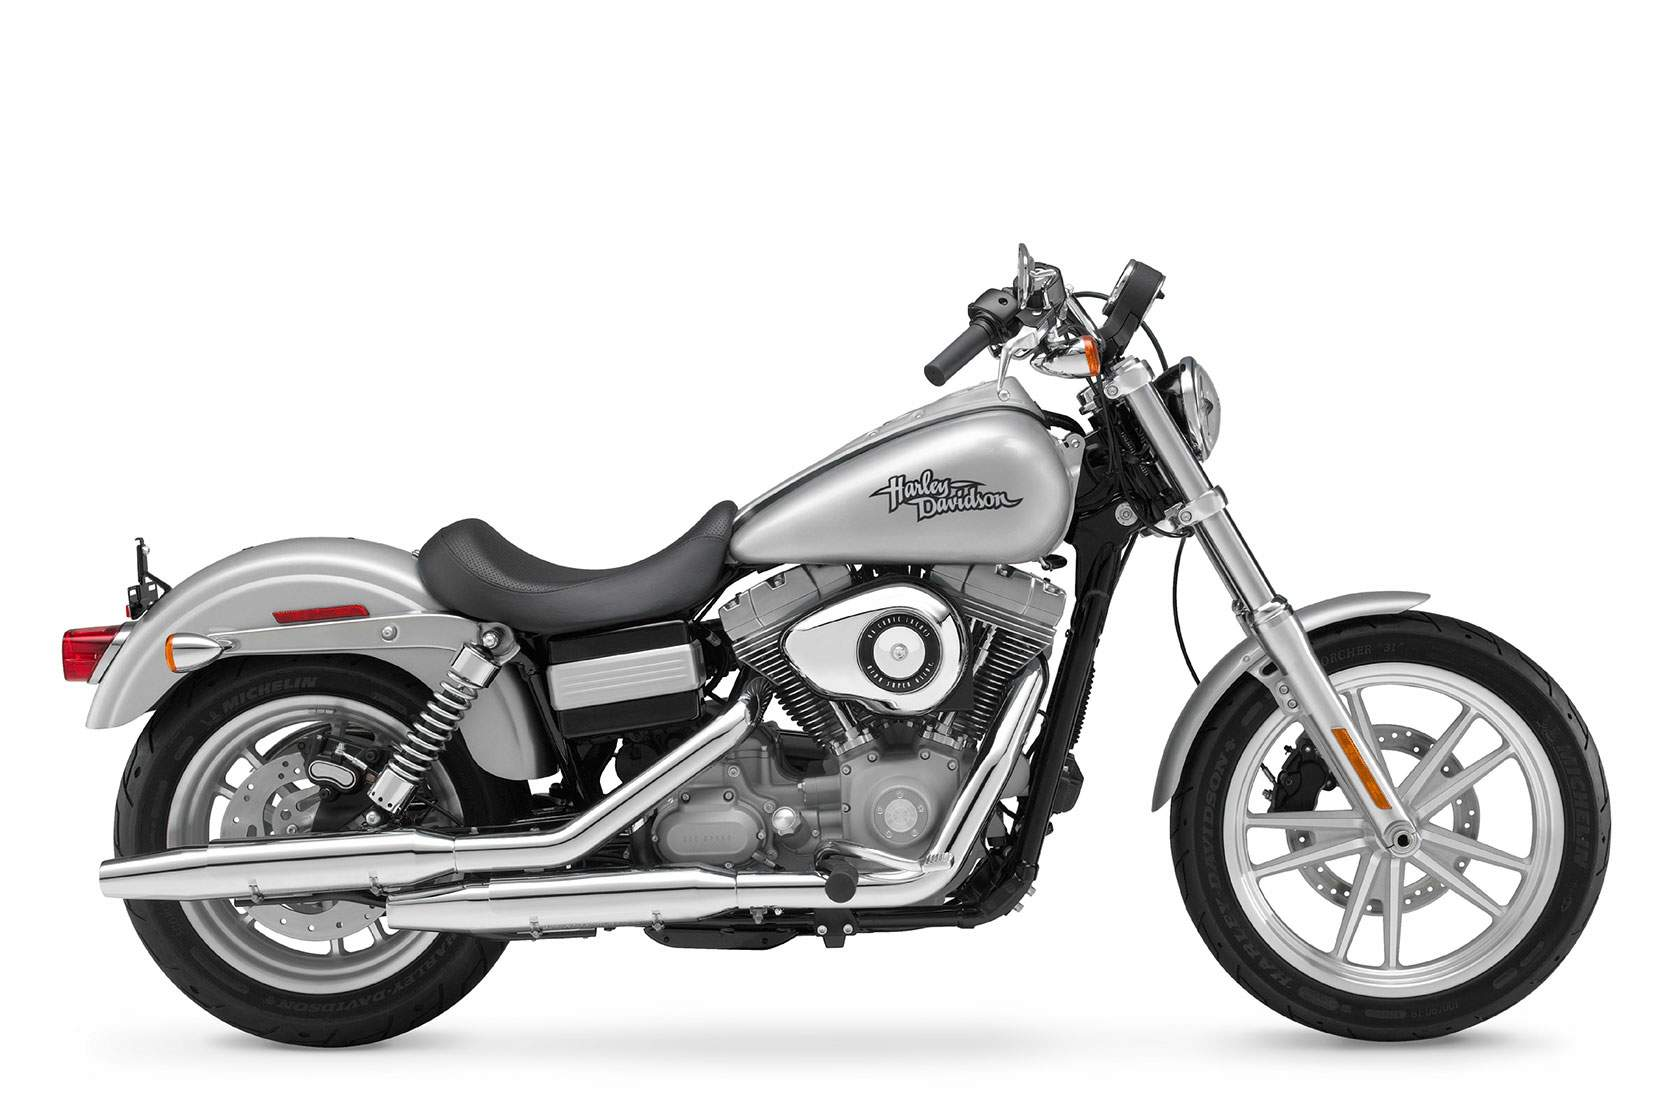 Wiring Diagram For 2010 Harley Wide Glide Tires